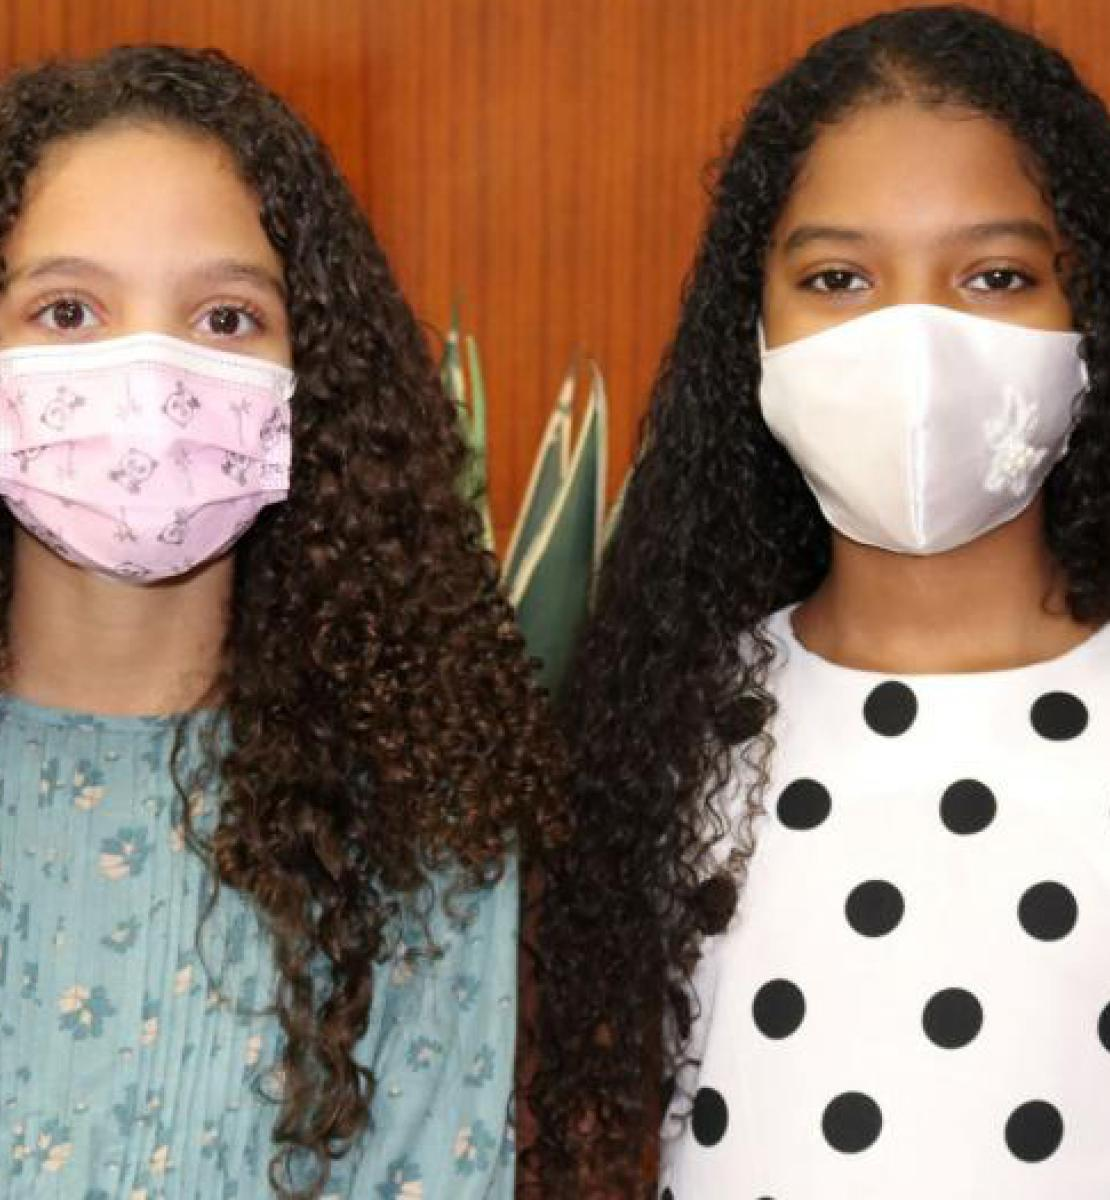 Anyah Spencer Maia and Victoria Roberts Gonçalves Gomes, age 10 stand side-by-side facing the camera wearing face masks.